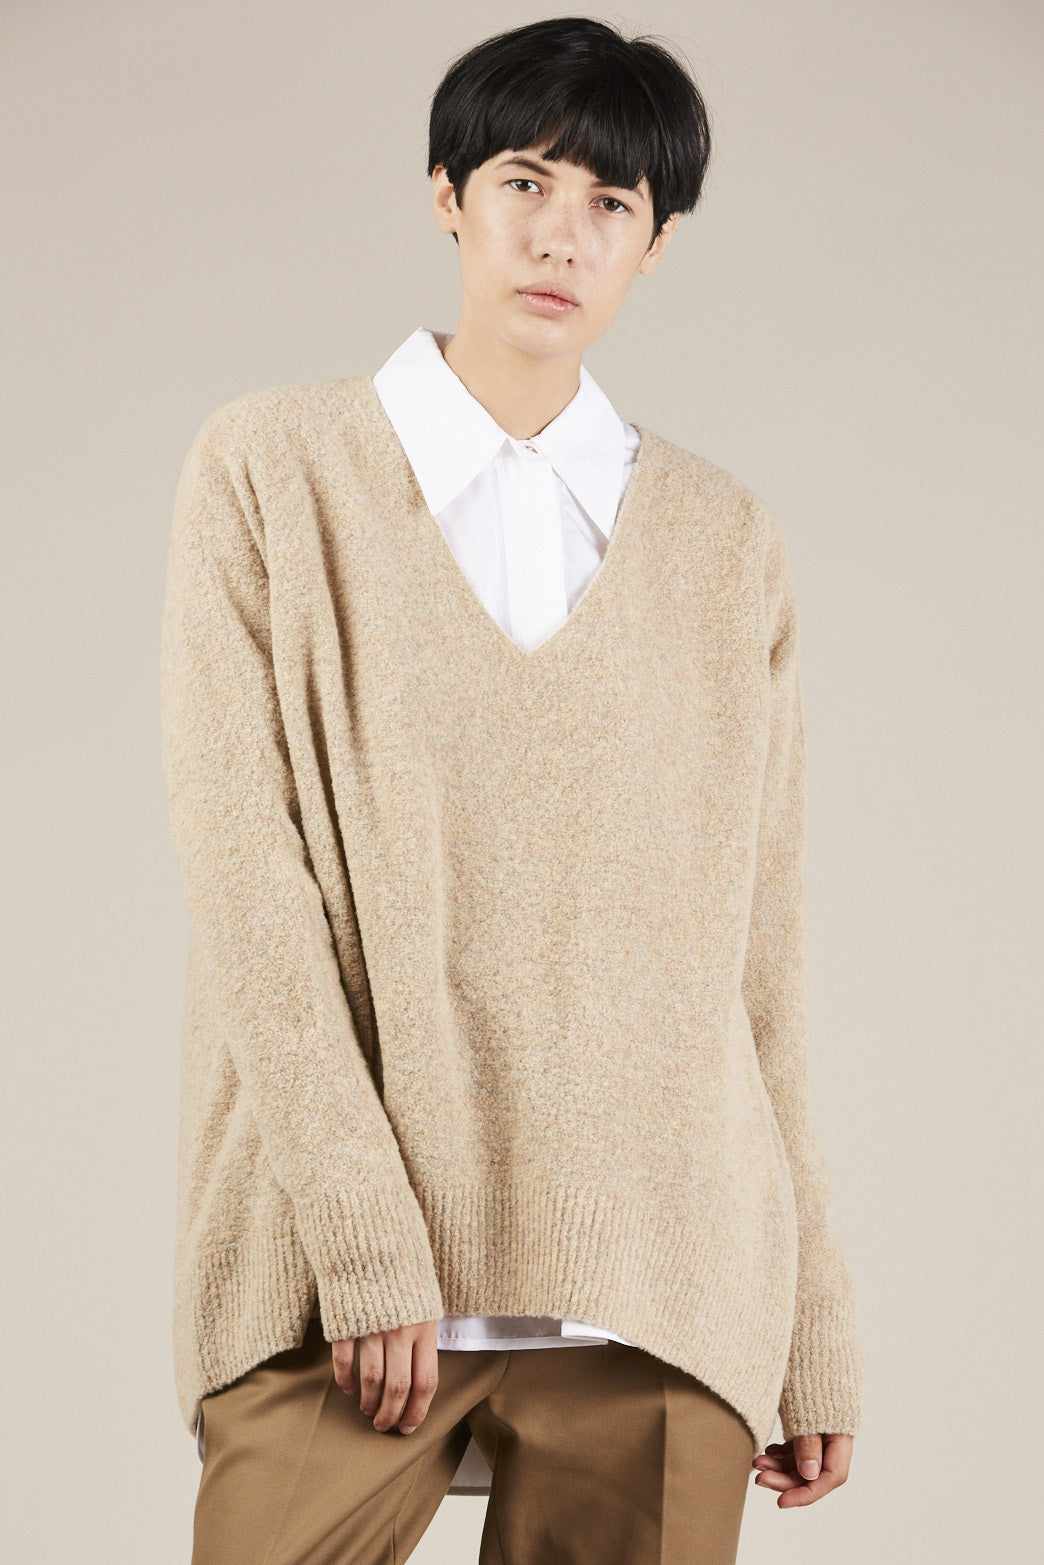 Kimir Sweater, Beige - Christian Wijnants